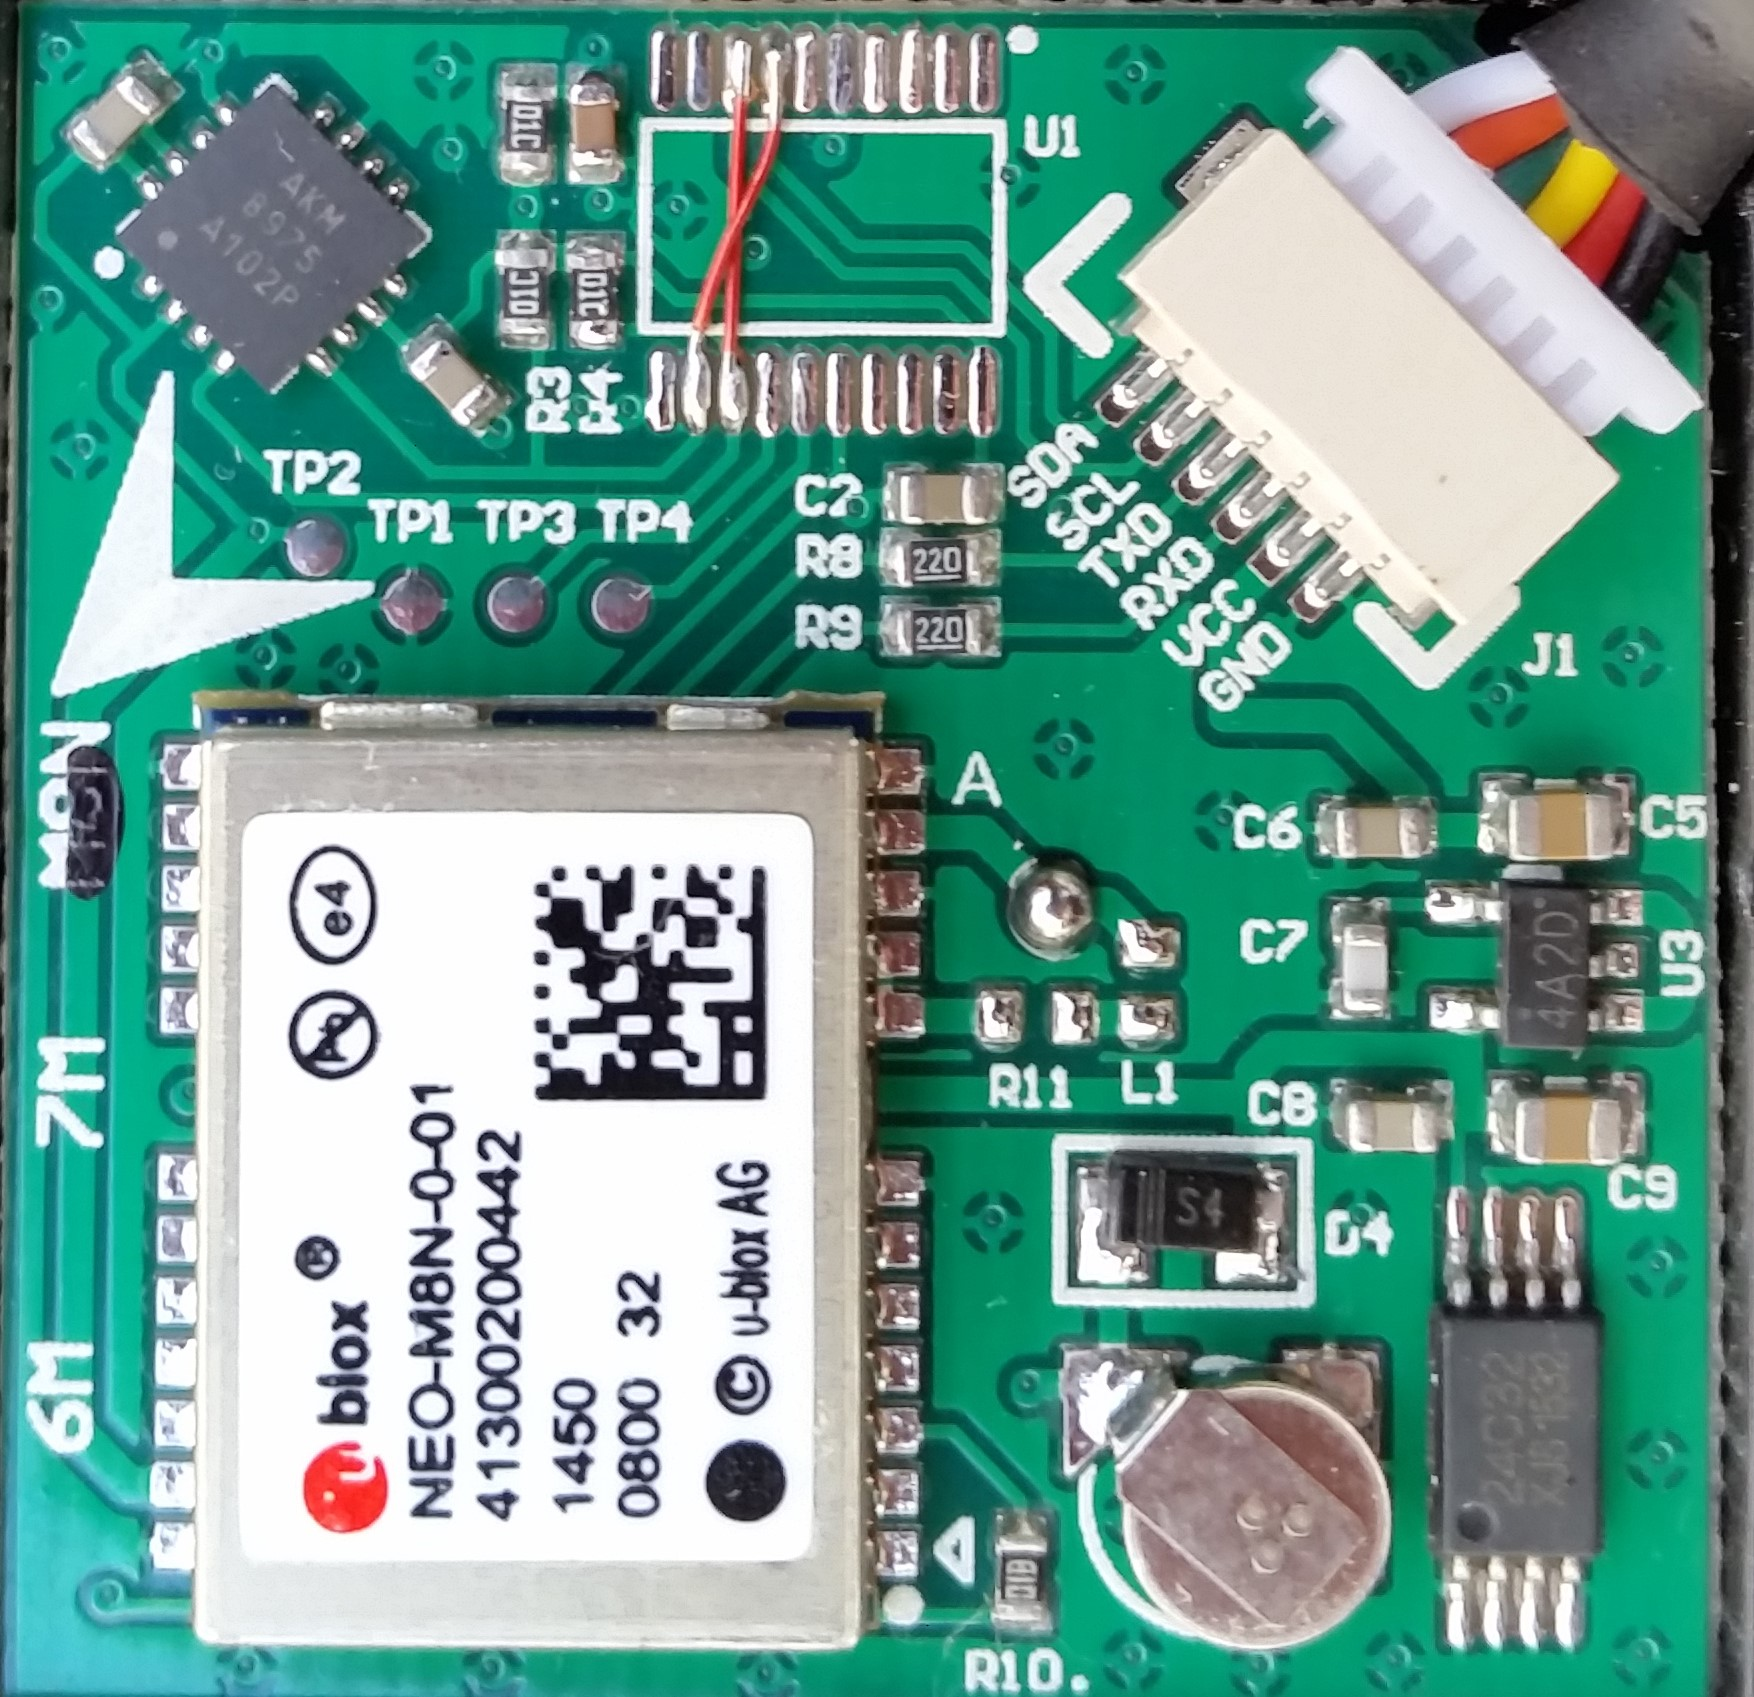 User guide for fis1100 evaluation kit.